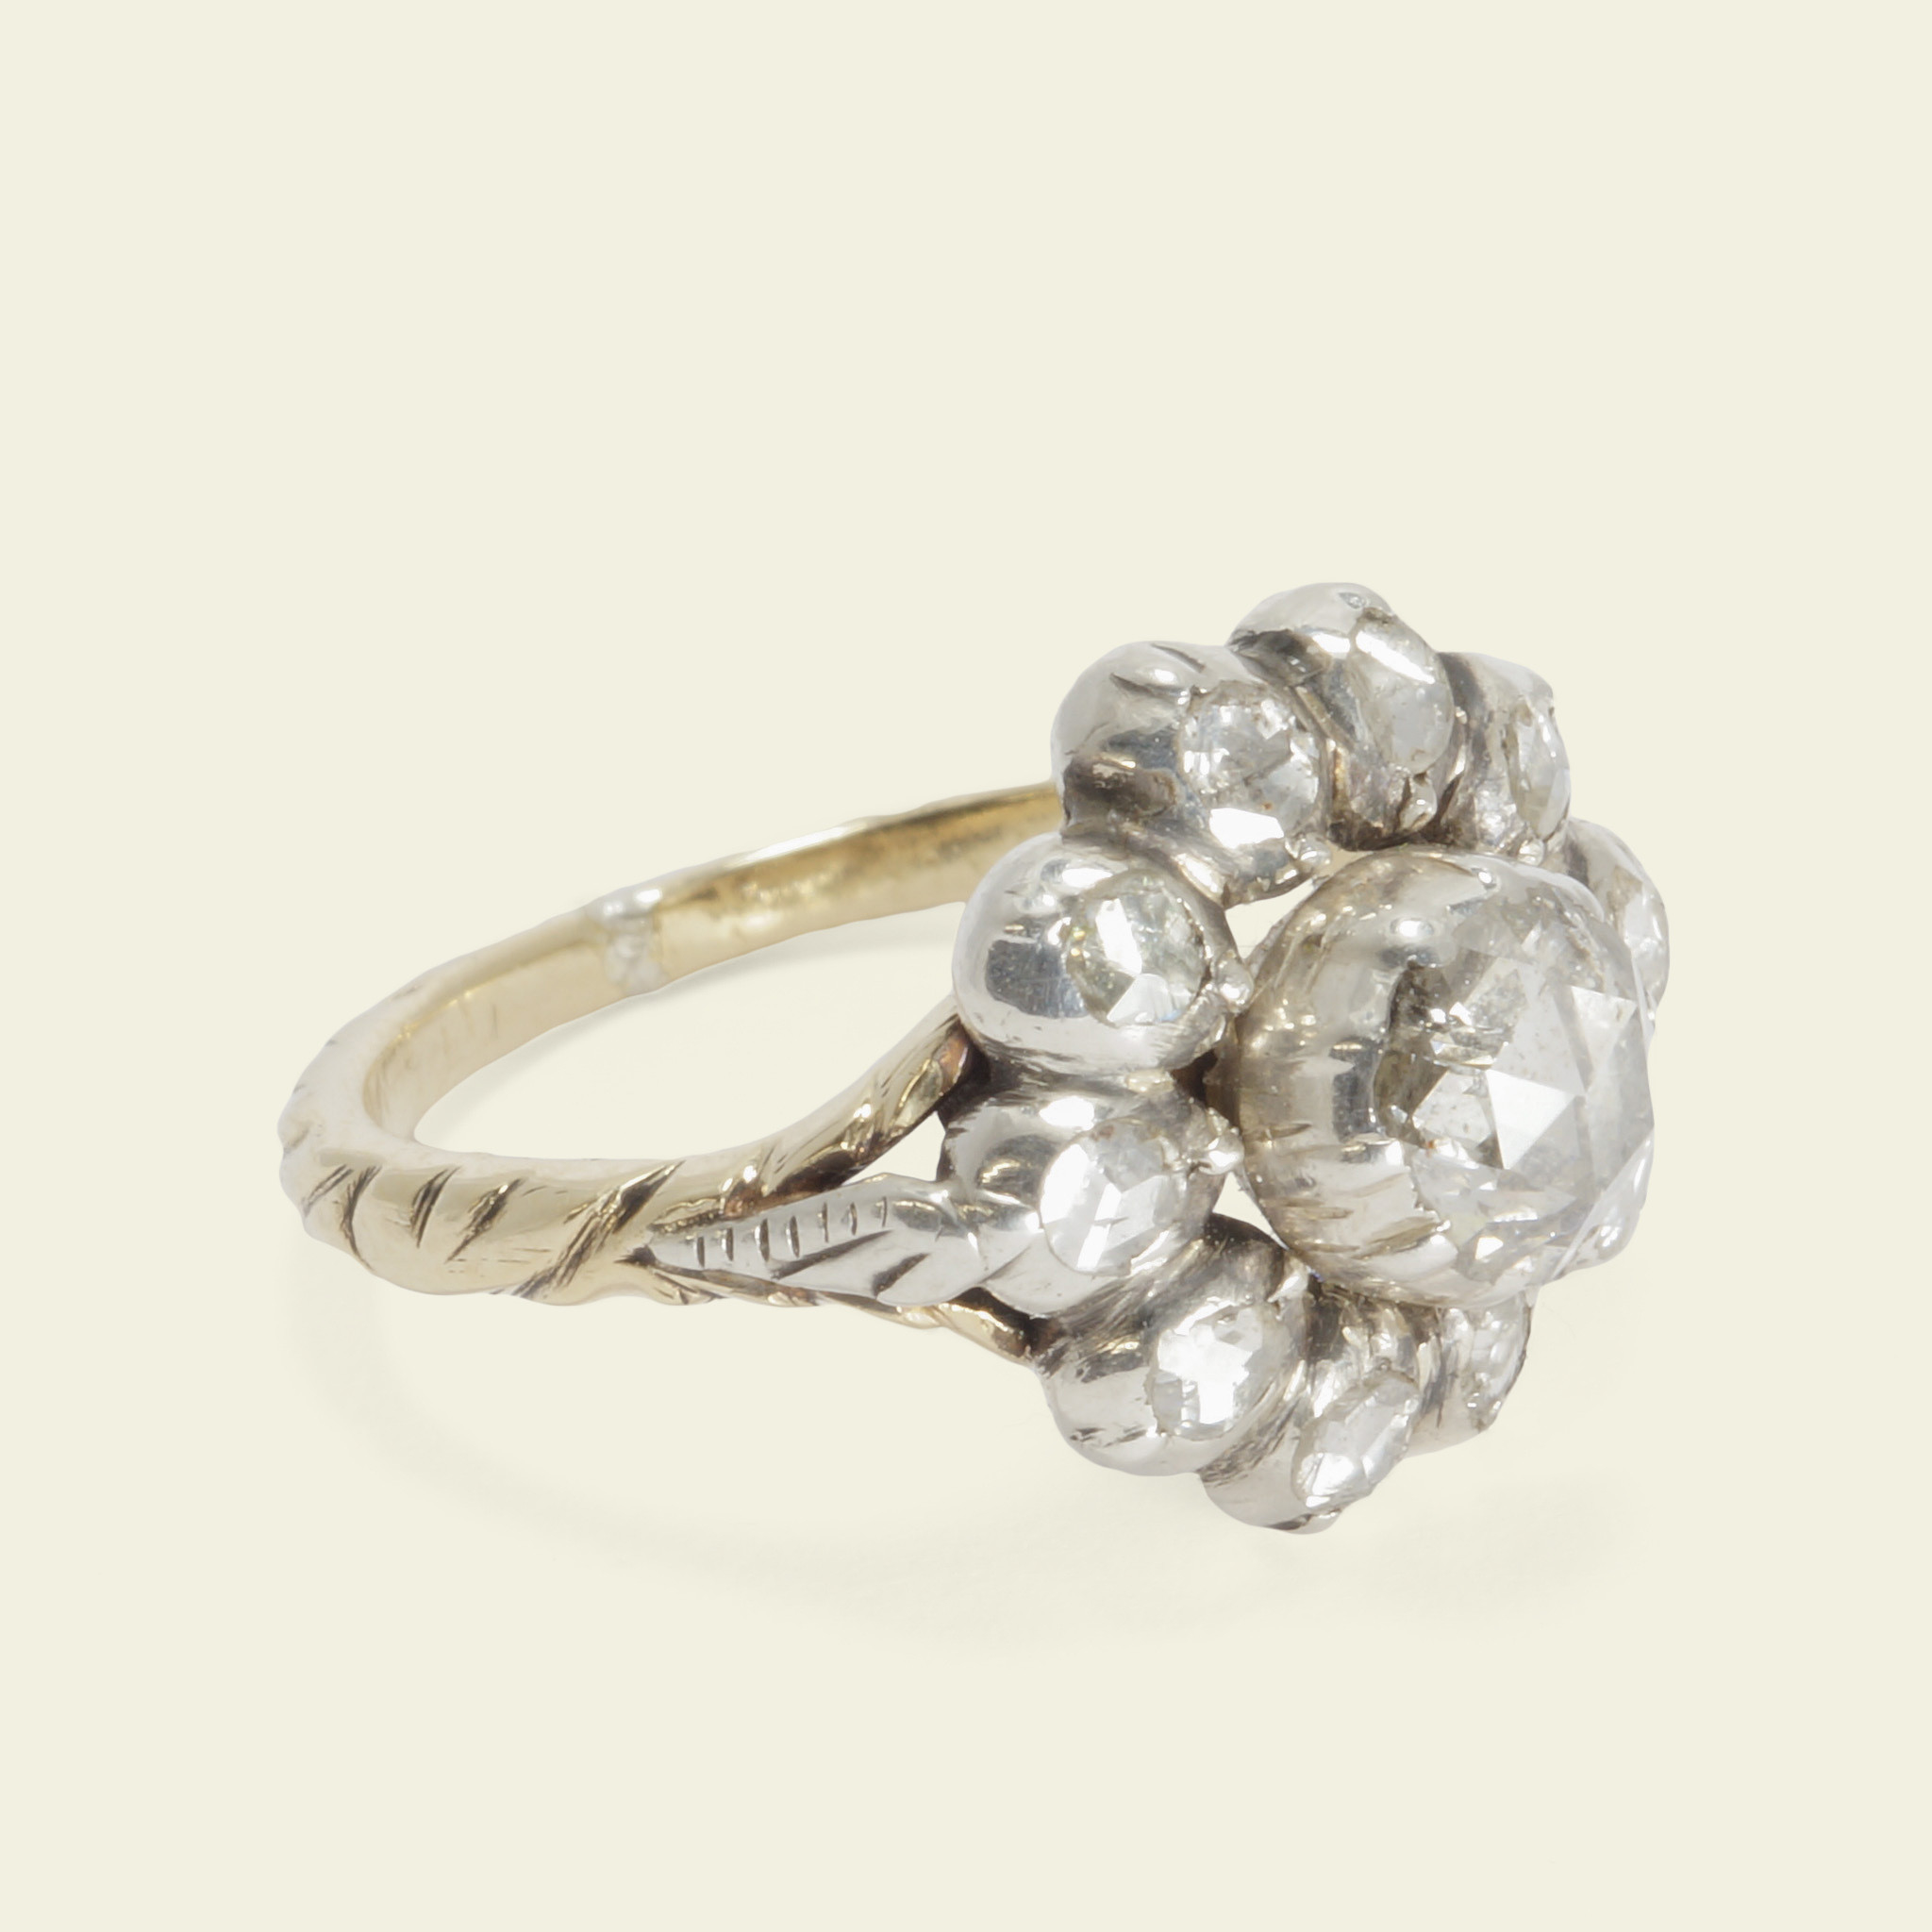 jewellery engagement collections audrey ring rings ethical rose products cut no proposal solitaire claude